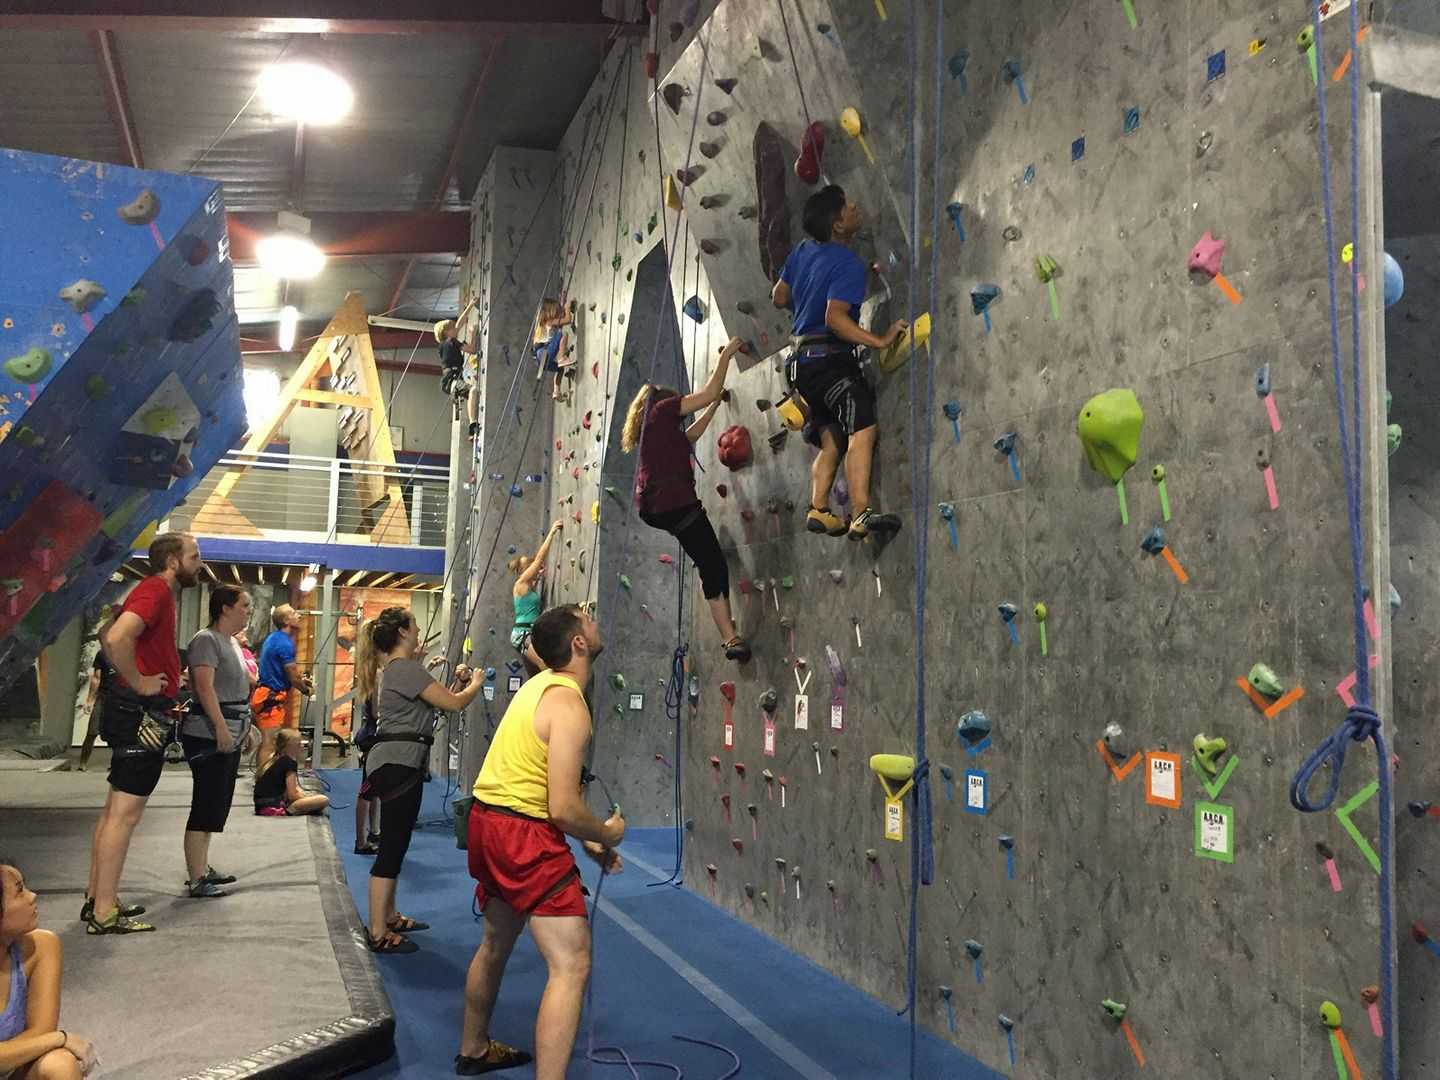 About - Find out about our day passes, memberships, classes, parties, and youth programs.